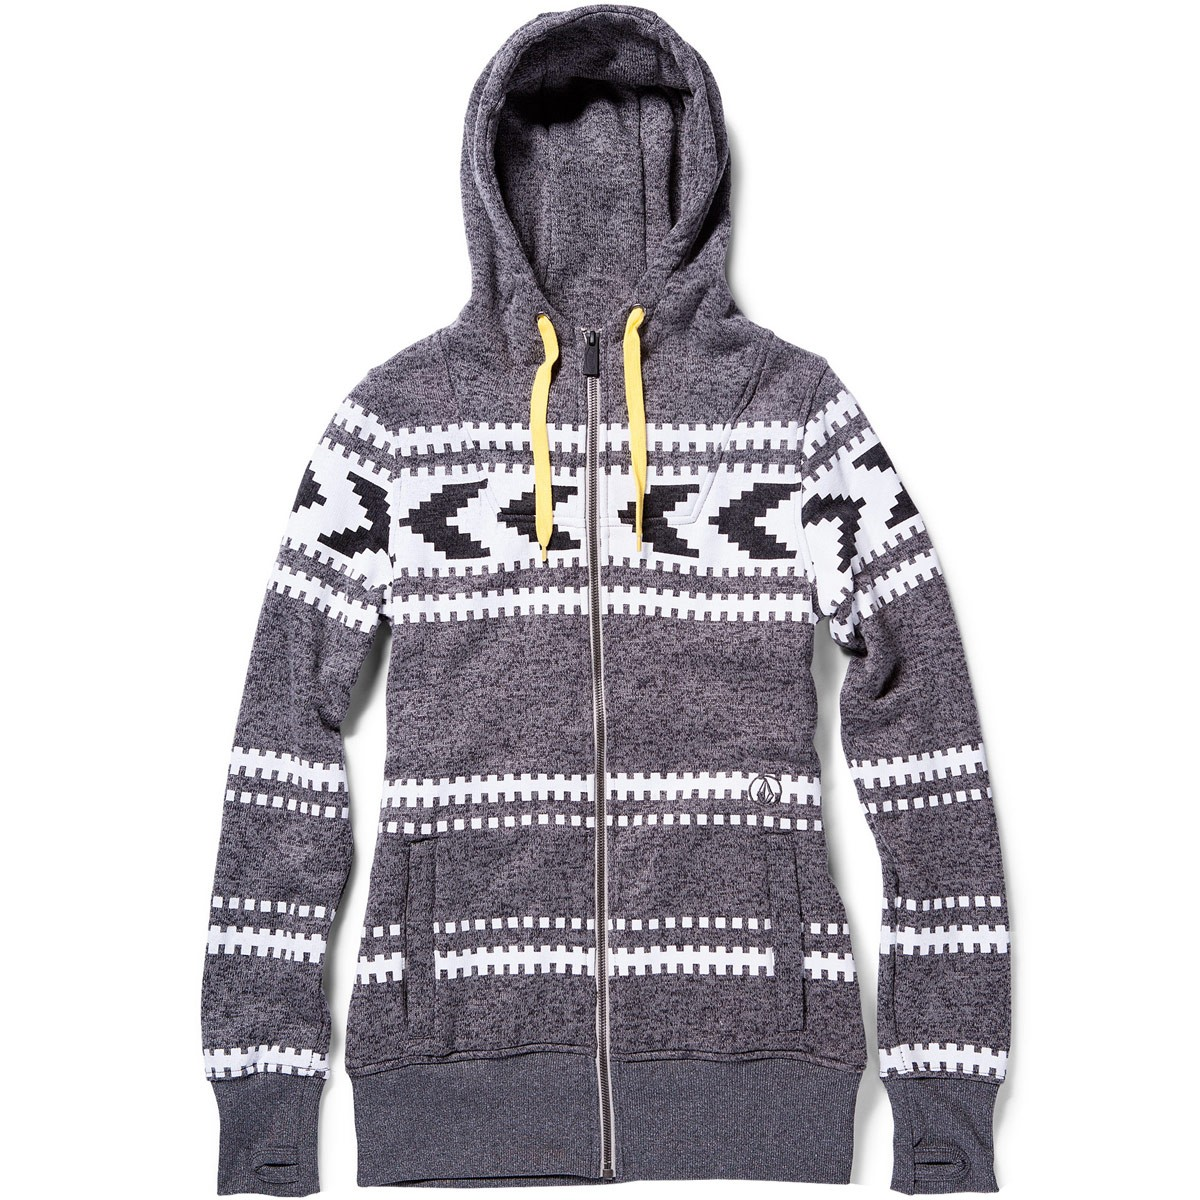 Volcom Sweater Fleece Women's Sweatshirt 2015 - Sparrow